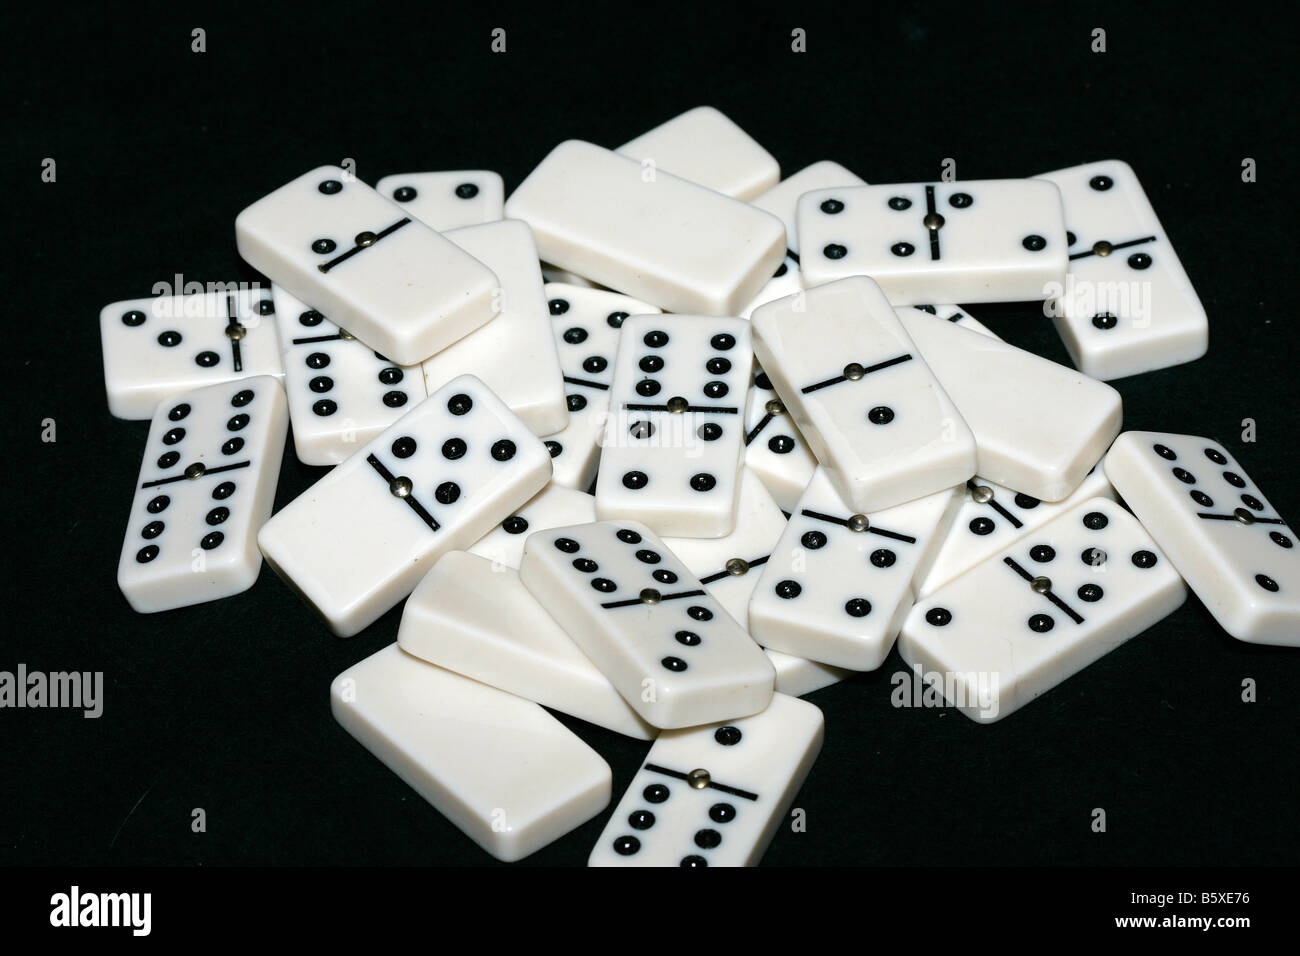 Domino set all in a pile Stock Photo